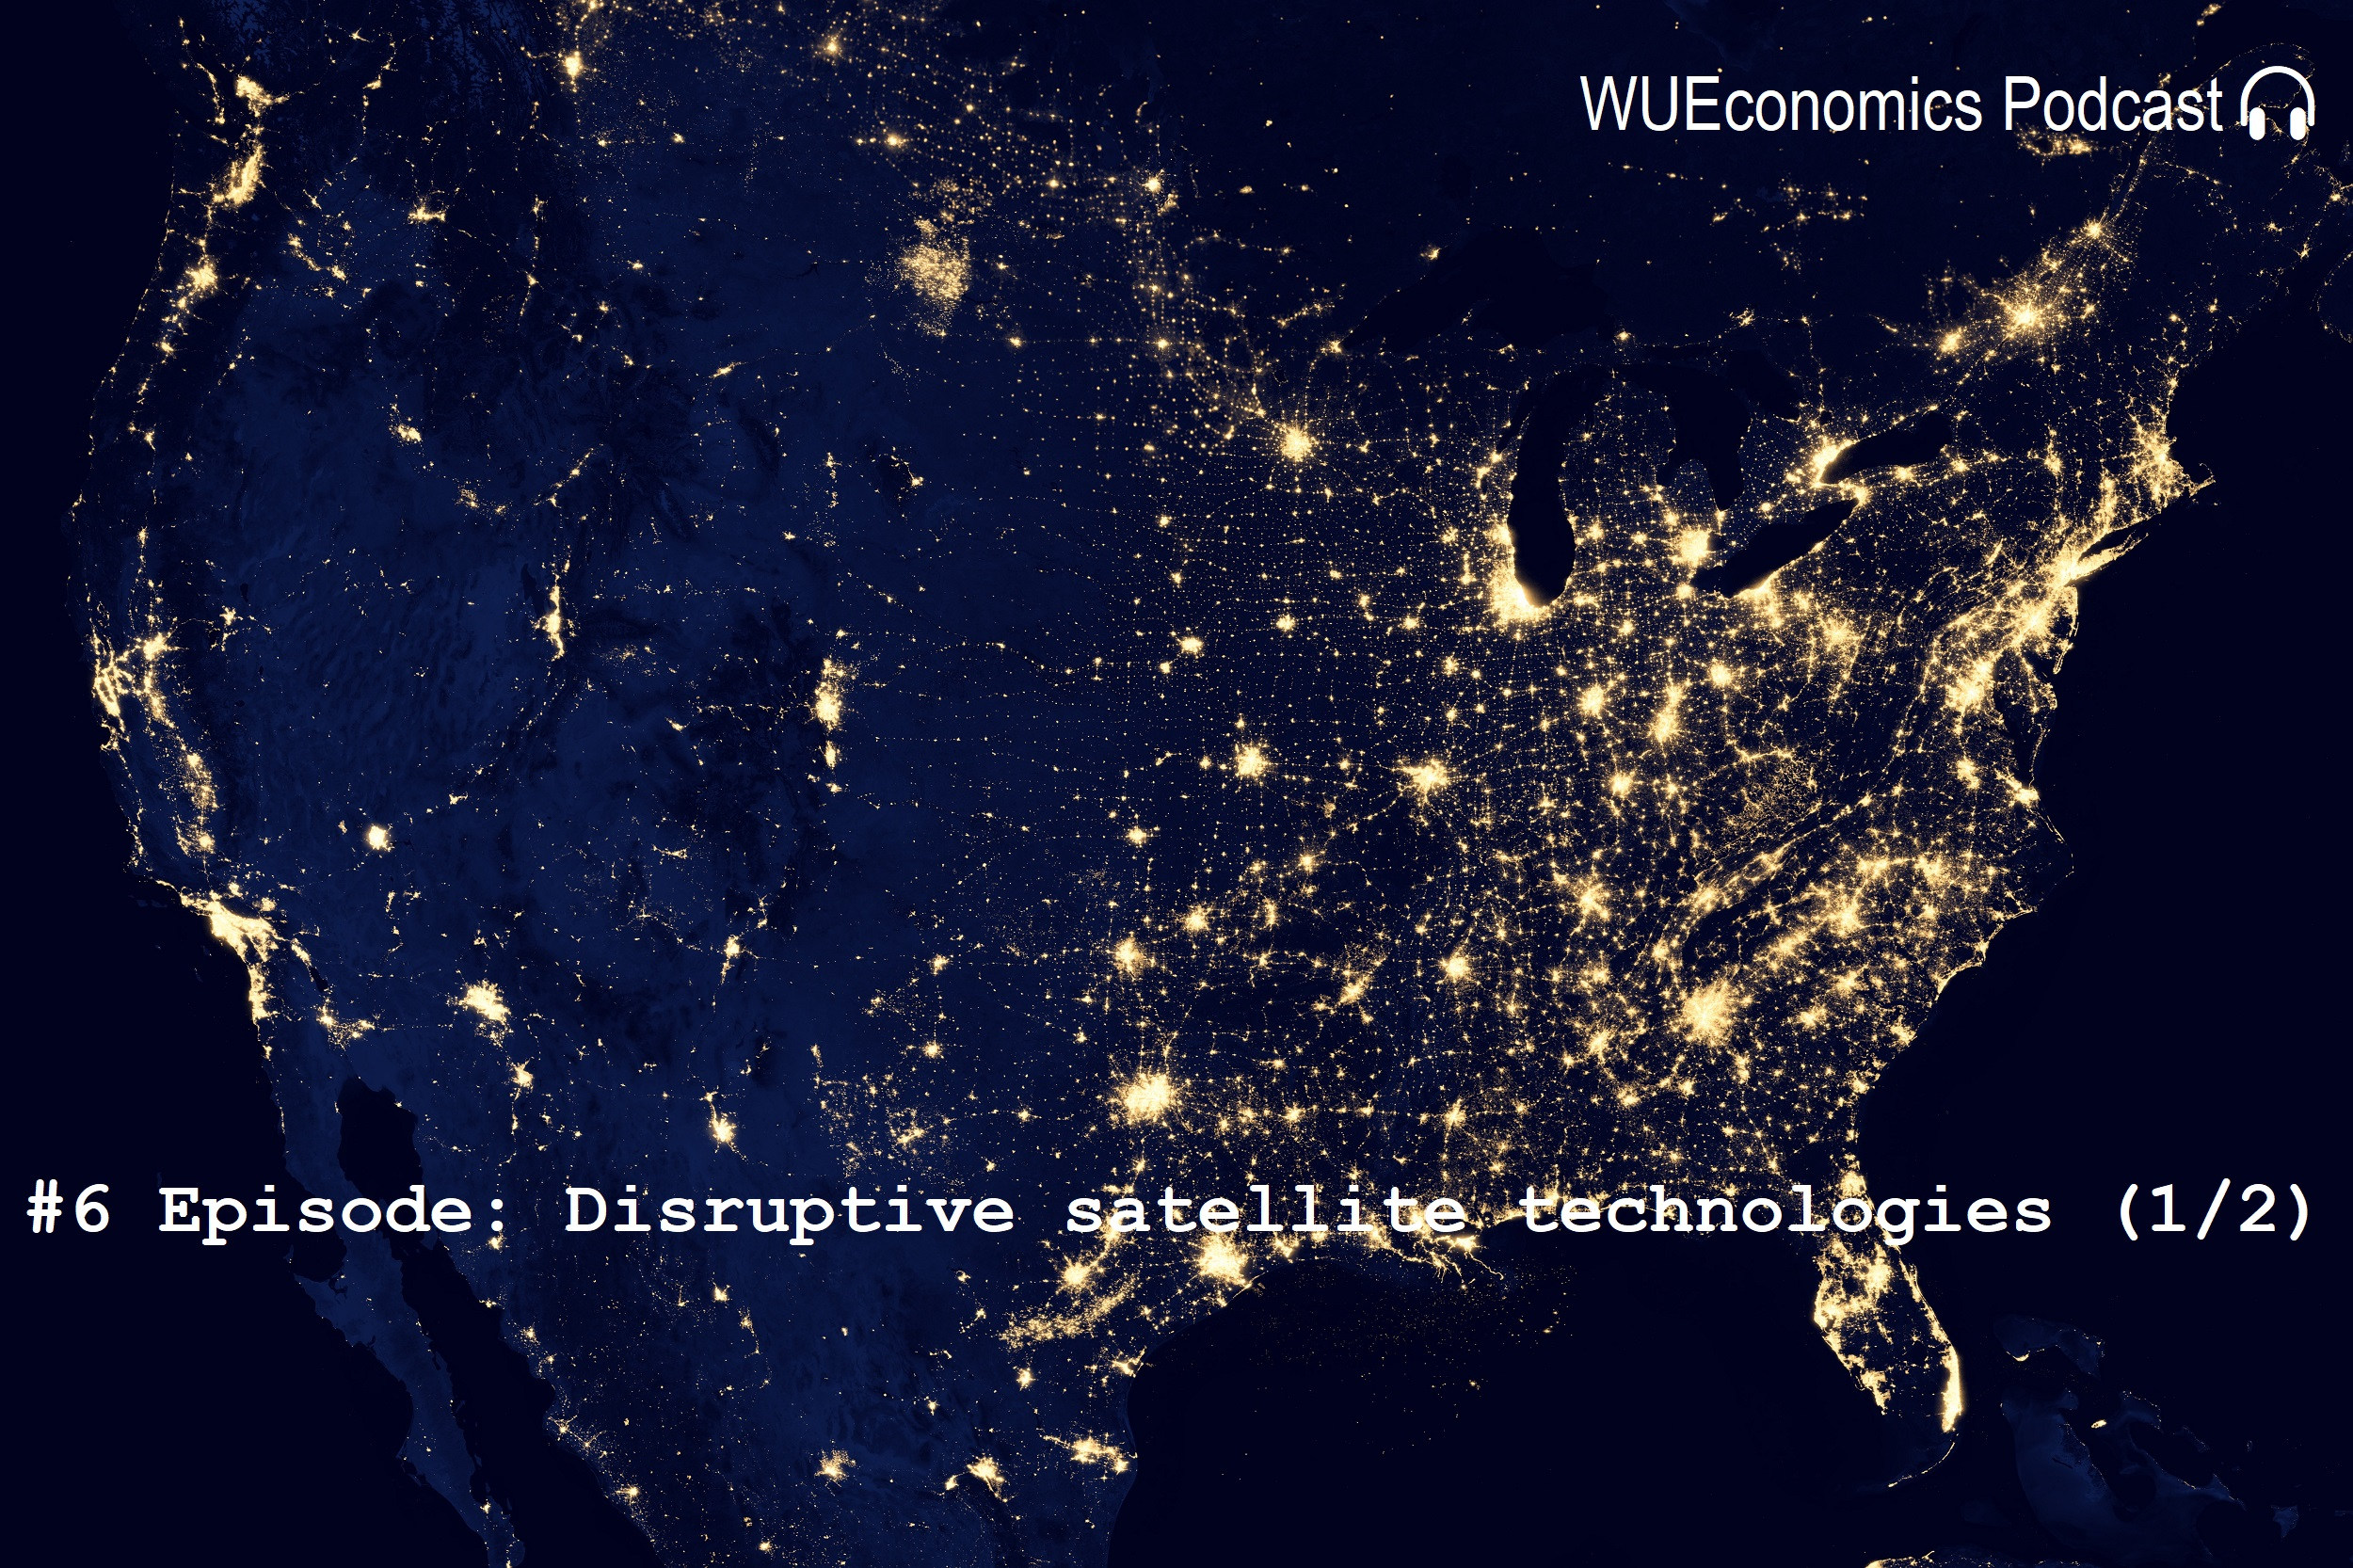 #6 Episode – Disruptive satellite technologies & Internet of Space